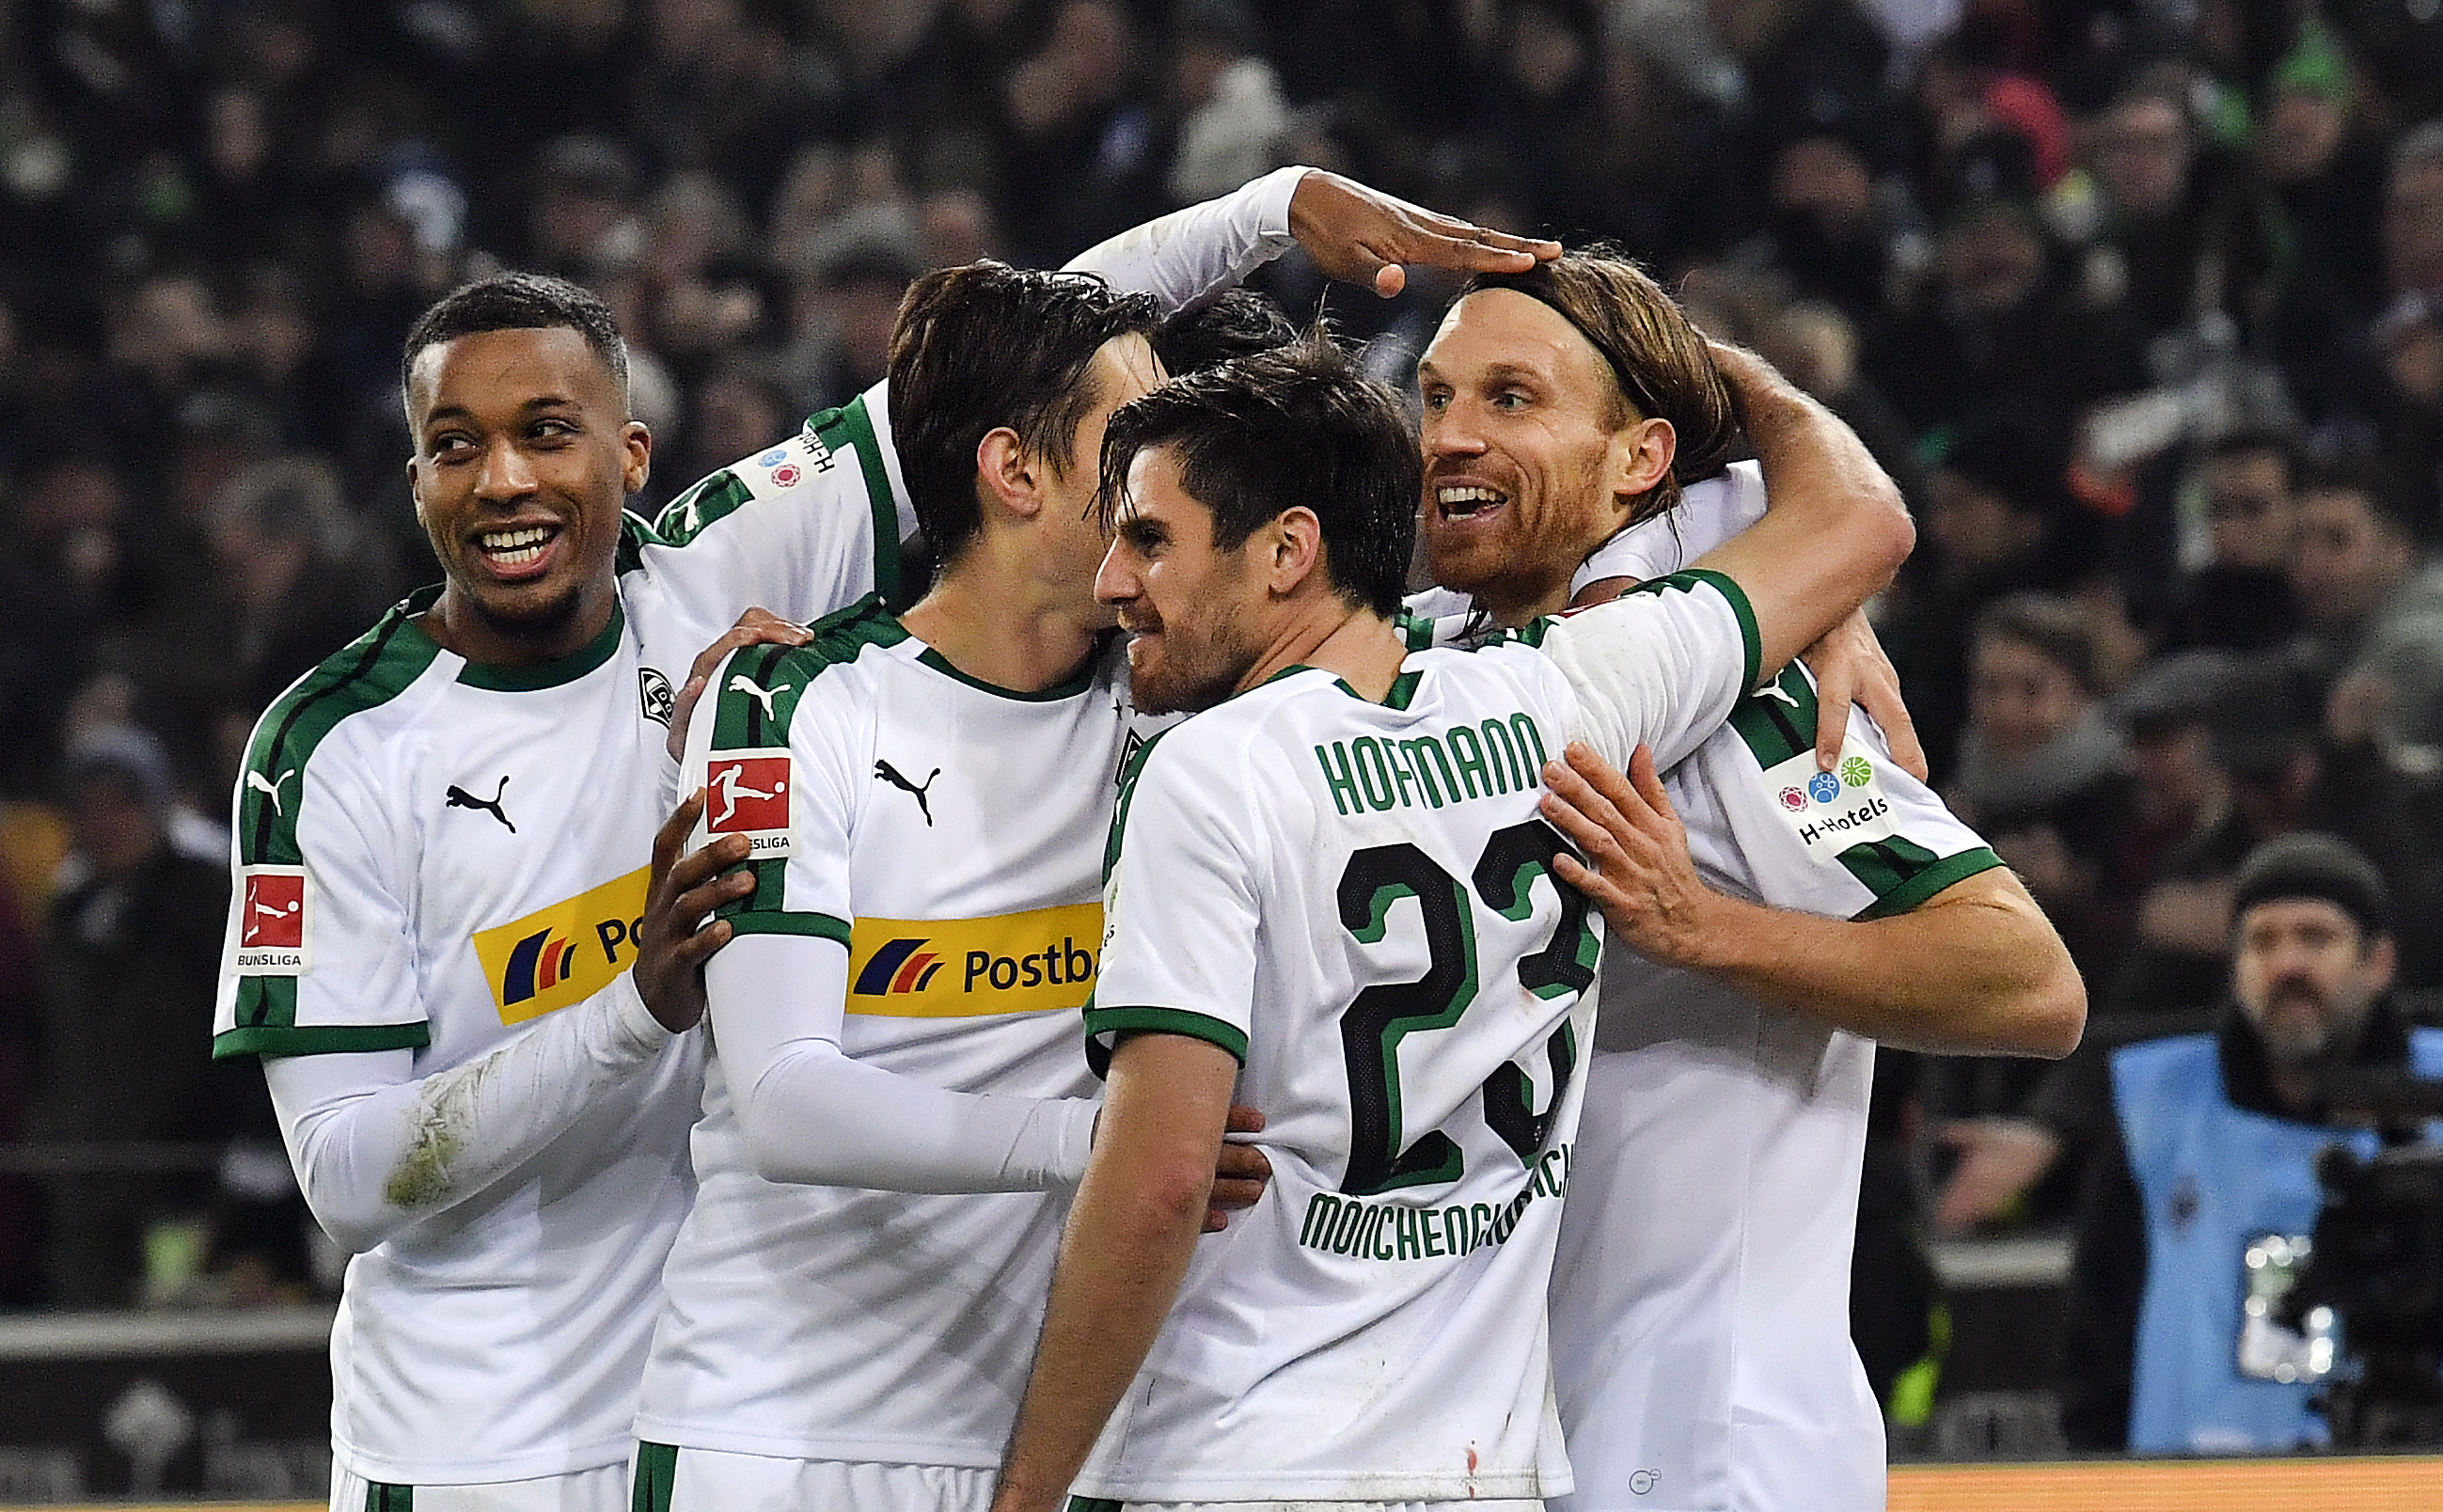 Gladbach reclaims 2nd in Bundesliga despite early Wood goal